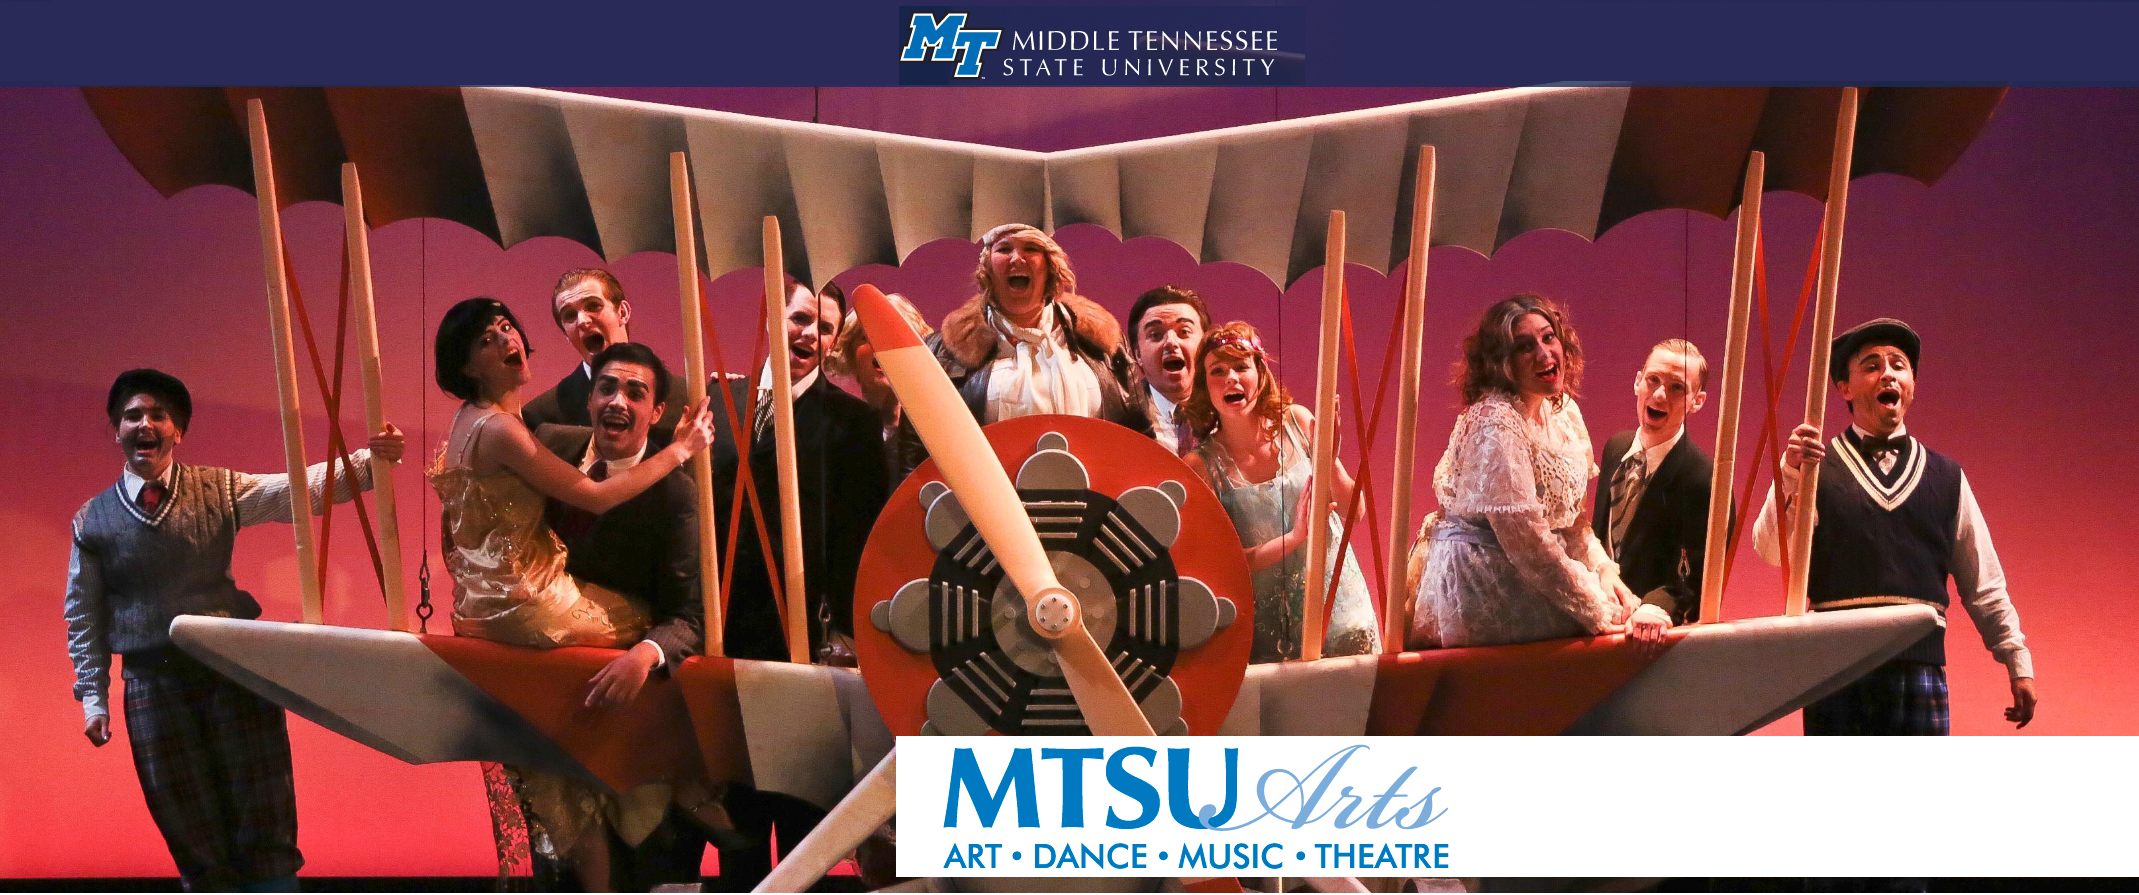 This will mark the 5th year that Joys of the Season has been showcased at MTSU. The production involves dance, theater, music, and art.